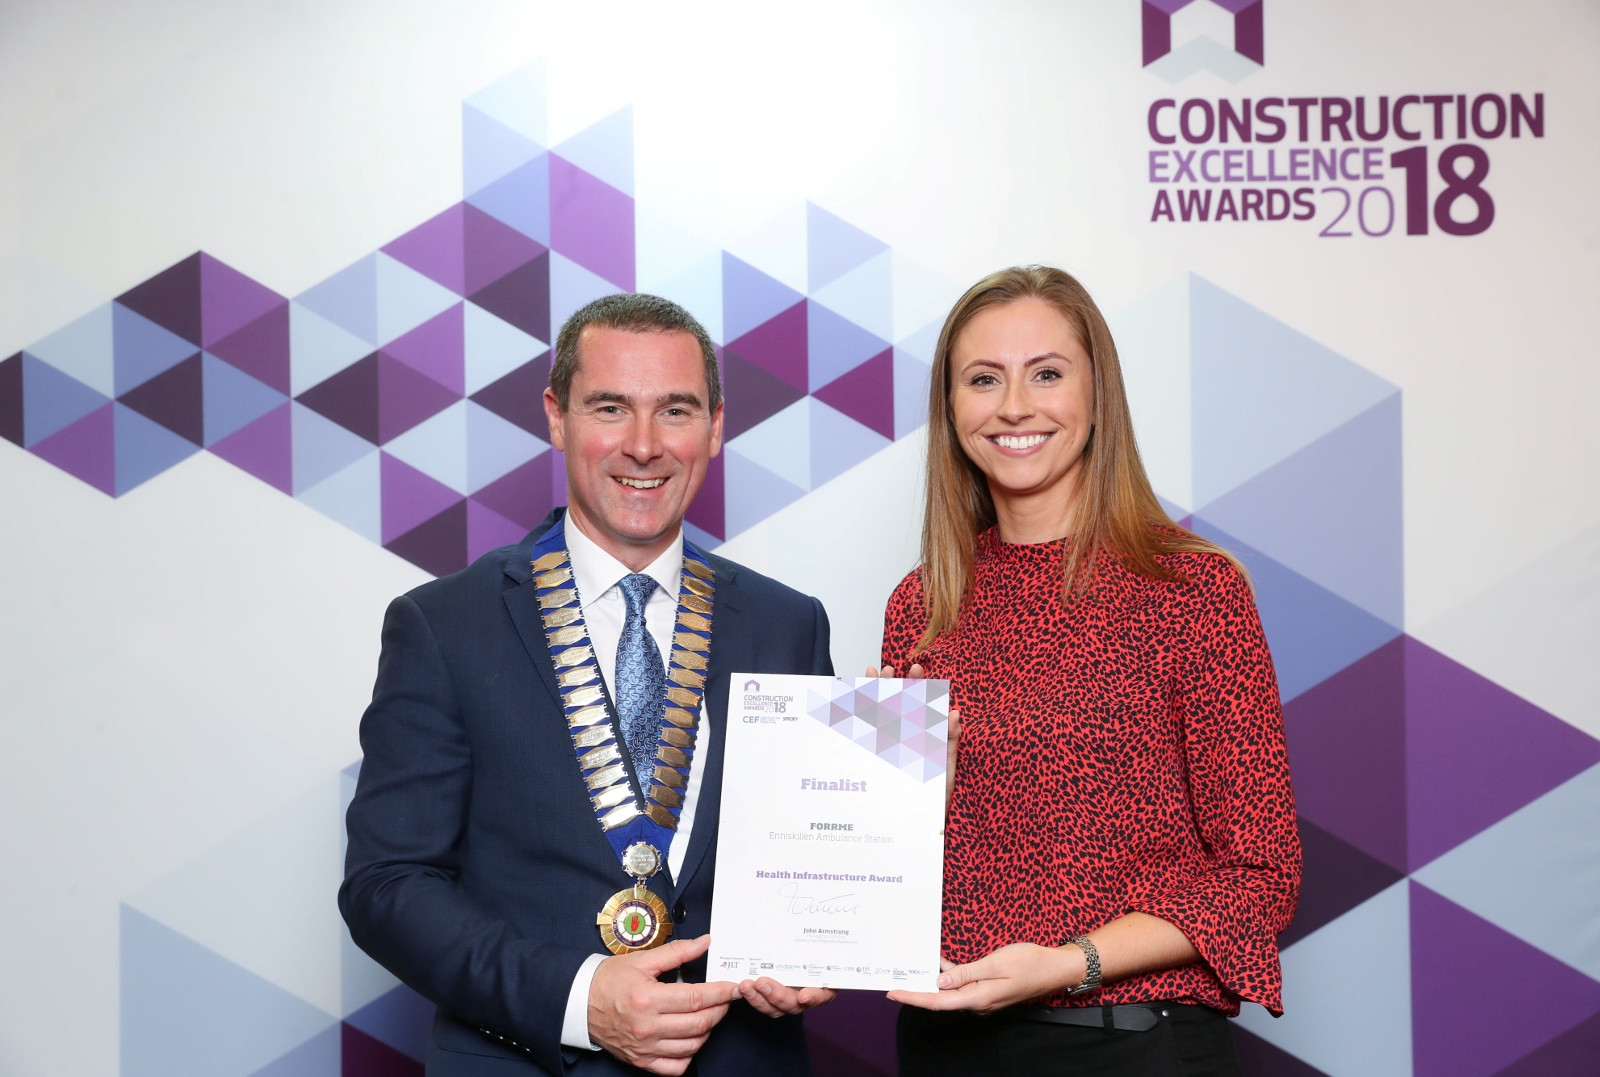 FORRME project amongst the finalists in Construction Excellence Awards 2018